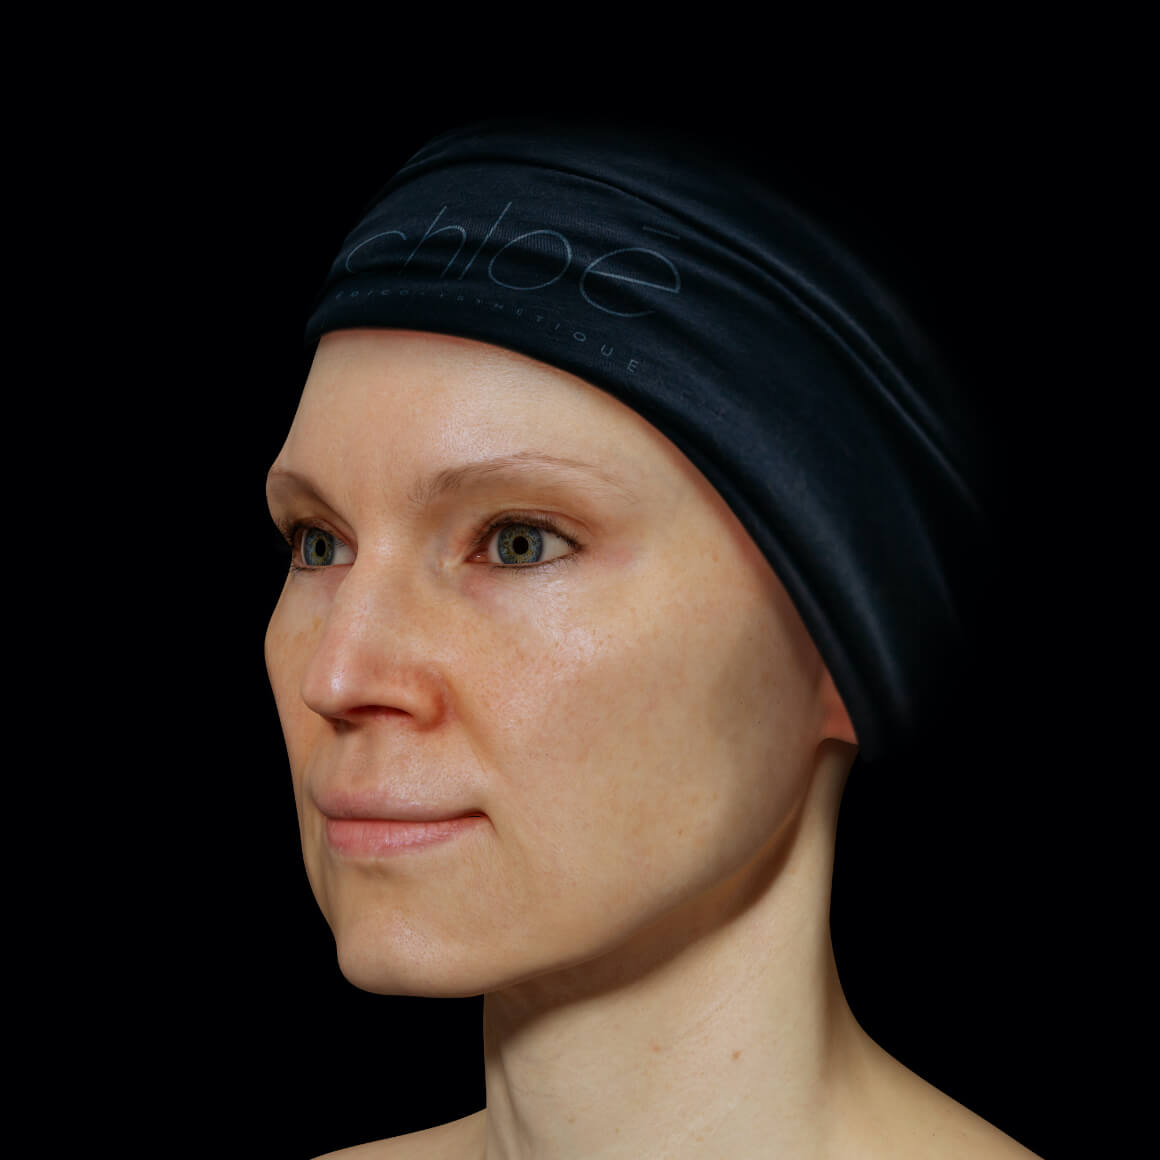 Female patient from Clinique Chloé positioned at an angle after Fotona 4D laser treatments to erase wrinkles